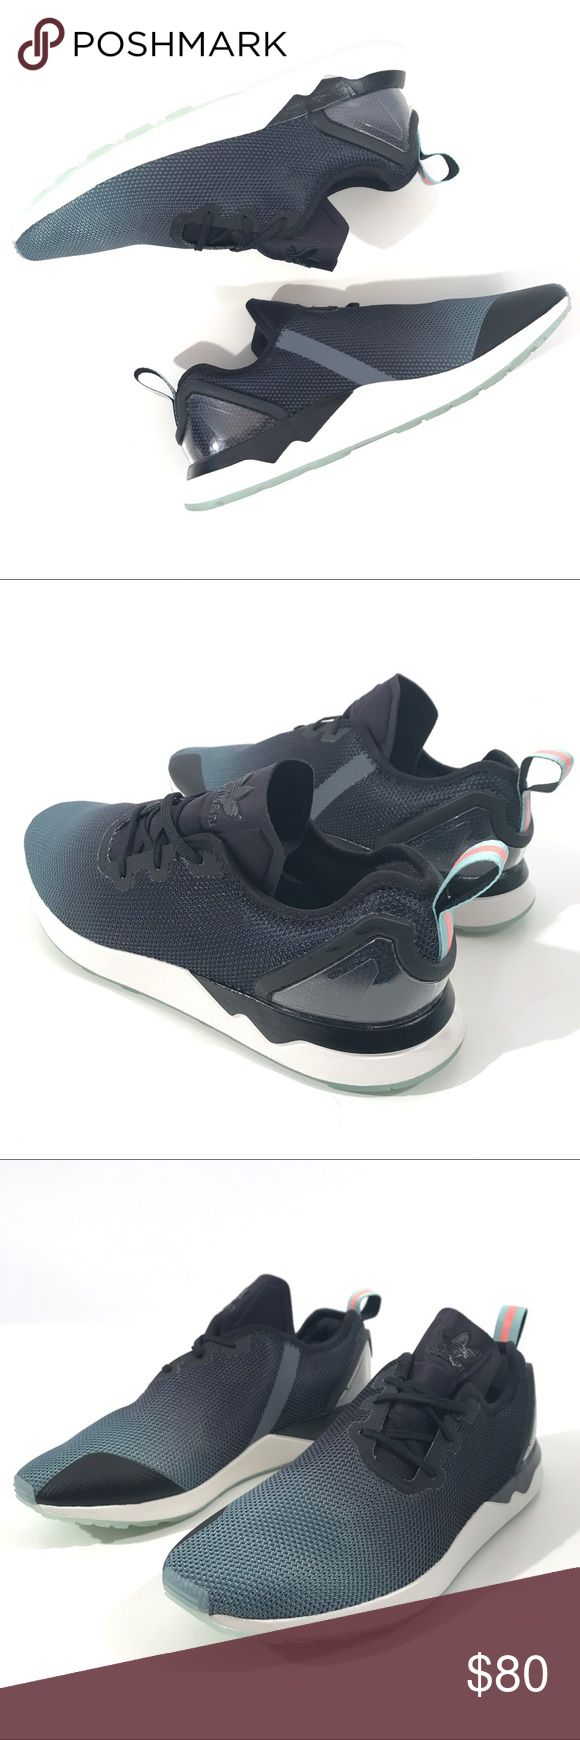 NEW Adidas Men ZX Flux ADV Asymmetrical Brand: Adidas Model: ZX Flux ADV Asymmetrical Size (US): 9.5, 10, 10.5 Model Number: S79055 Color: Core Black/Blue Glow Year: 2015 Condition: New without box MSRP: $110 Shoes are brand new without box and are guaranteed 100% authentic! adidas Shoes Sneakers